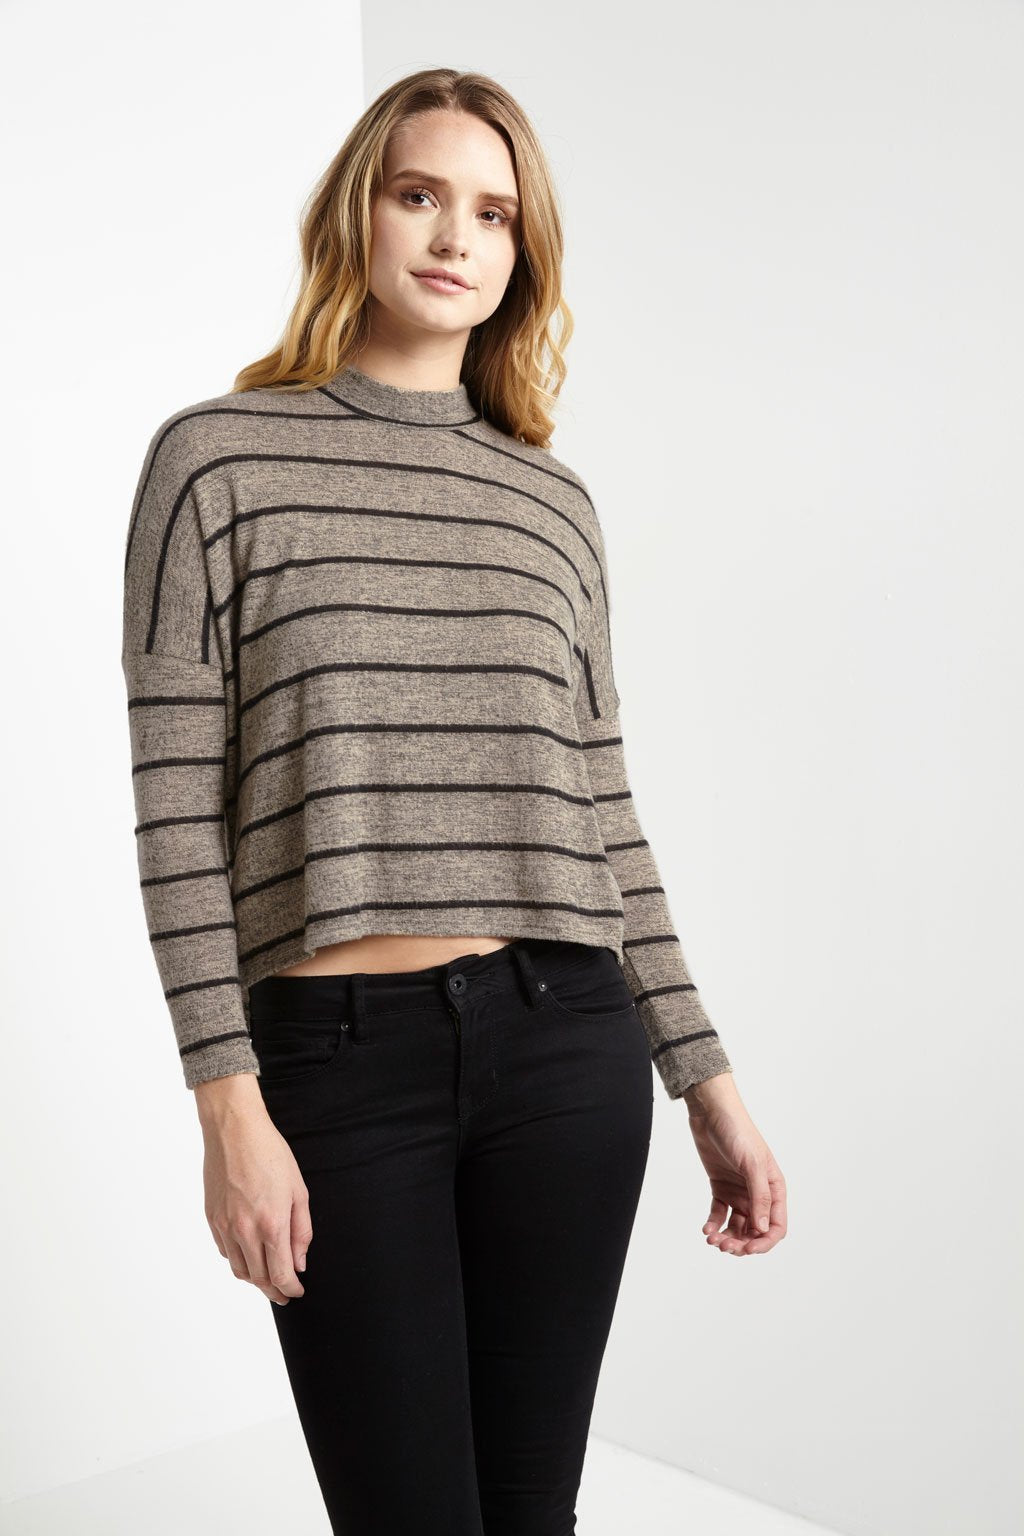 Poshsquare Tops Love Life Striped Mockneck Sweater Top